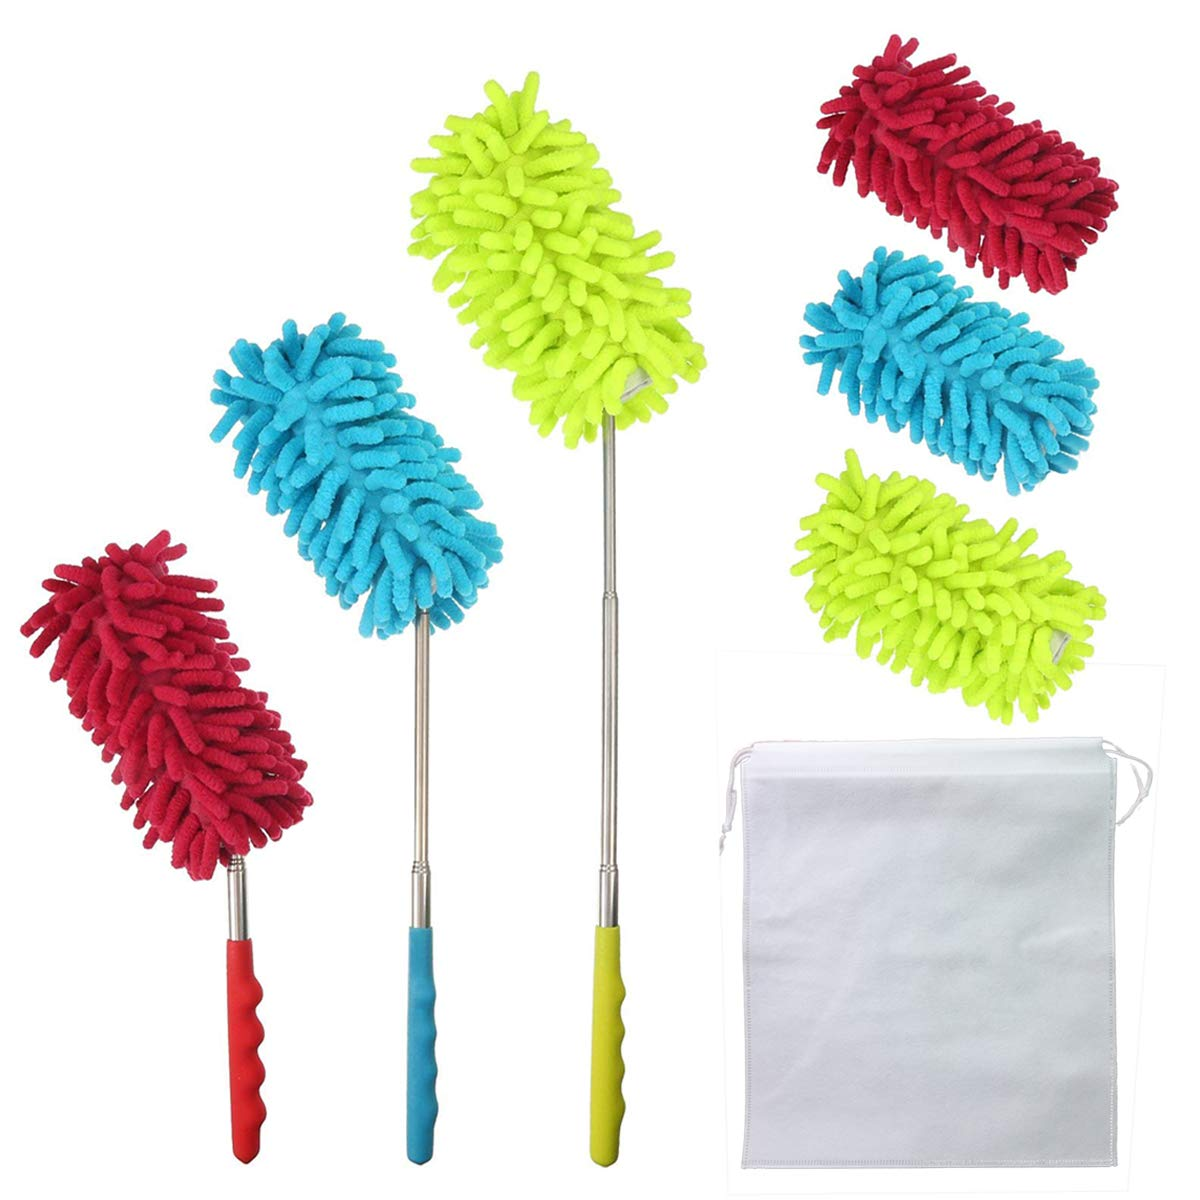 BRT Bendable Extendable Microfiber telescopic Duster Dusting Brush Set with Free 3 Chenille Duster Heads, Washable Noodle Duster Head for Home, Office, Car